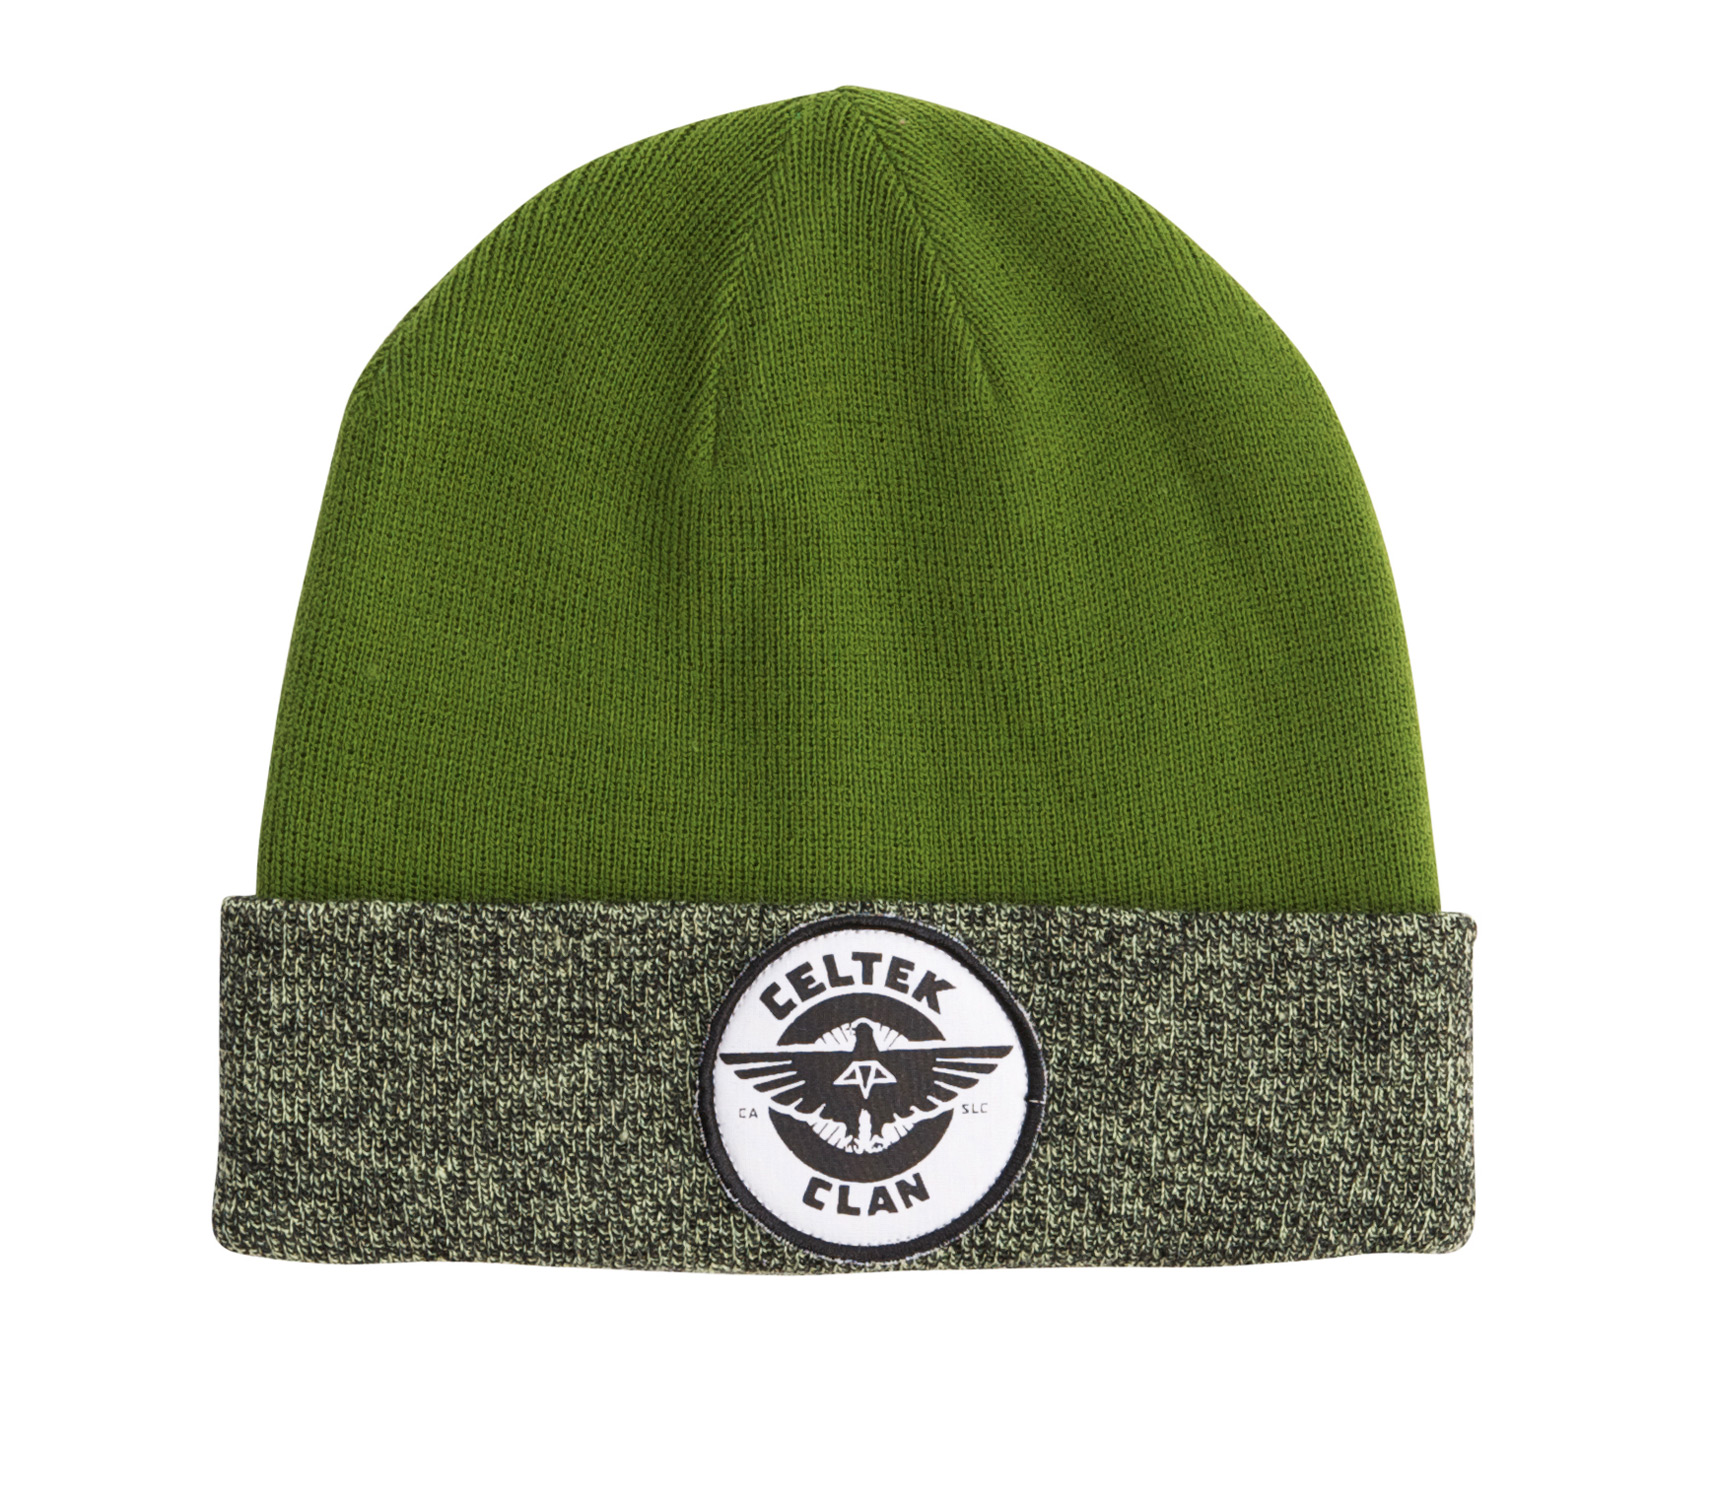 When the weather outside is cool, you need to look cool too! Don't go for some cheap beanie. Get the Celtek Motobird Beanie! It's a 100% acrylic ribbed knit beanie, so you know it's the best. The custom twill patch adds a unique touch. Are you the type that loves physical winter action  Well this beanie is for you because it's perfect for skiing and snowboarding!Key Features of the Celtek Motobird Beanie: 100% acrylic rib knit beanie Custom twill patch - $13.95